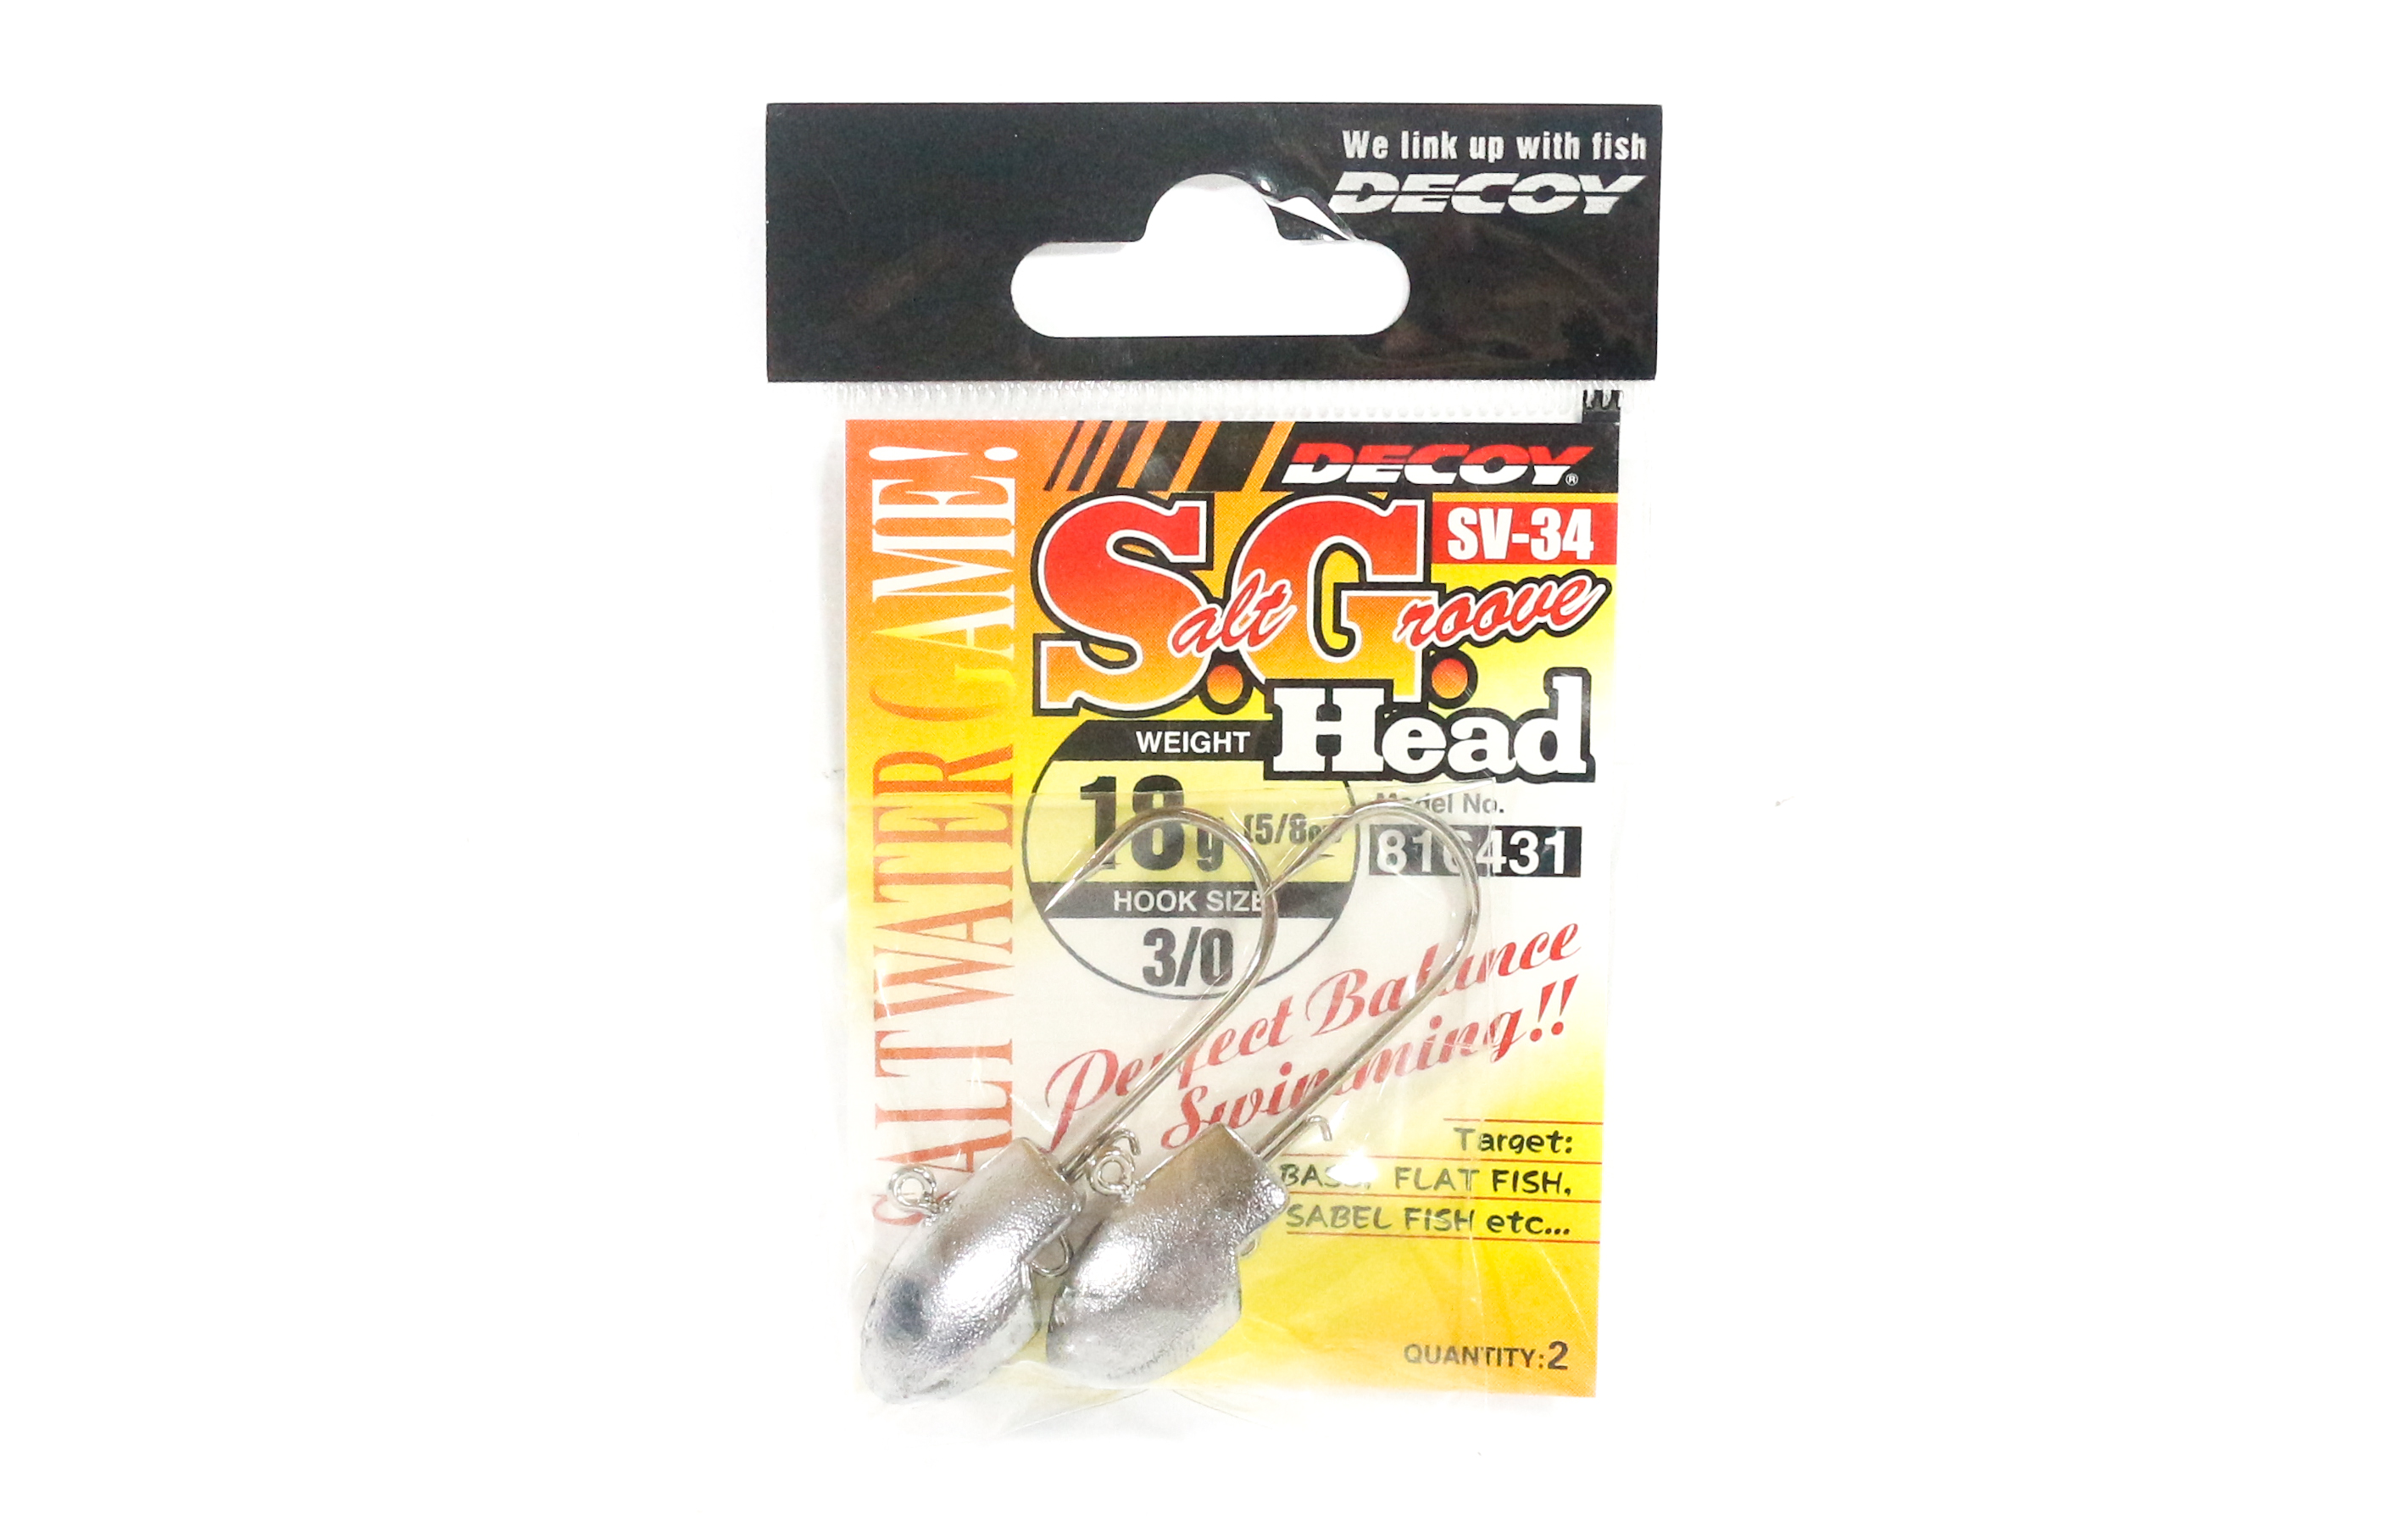 Decoy SV-34 Jig Head Salt Groove S.G Head Size 3/0 , 18 grams (6431)